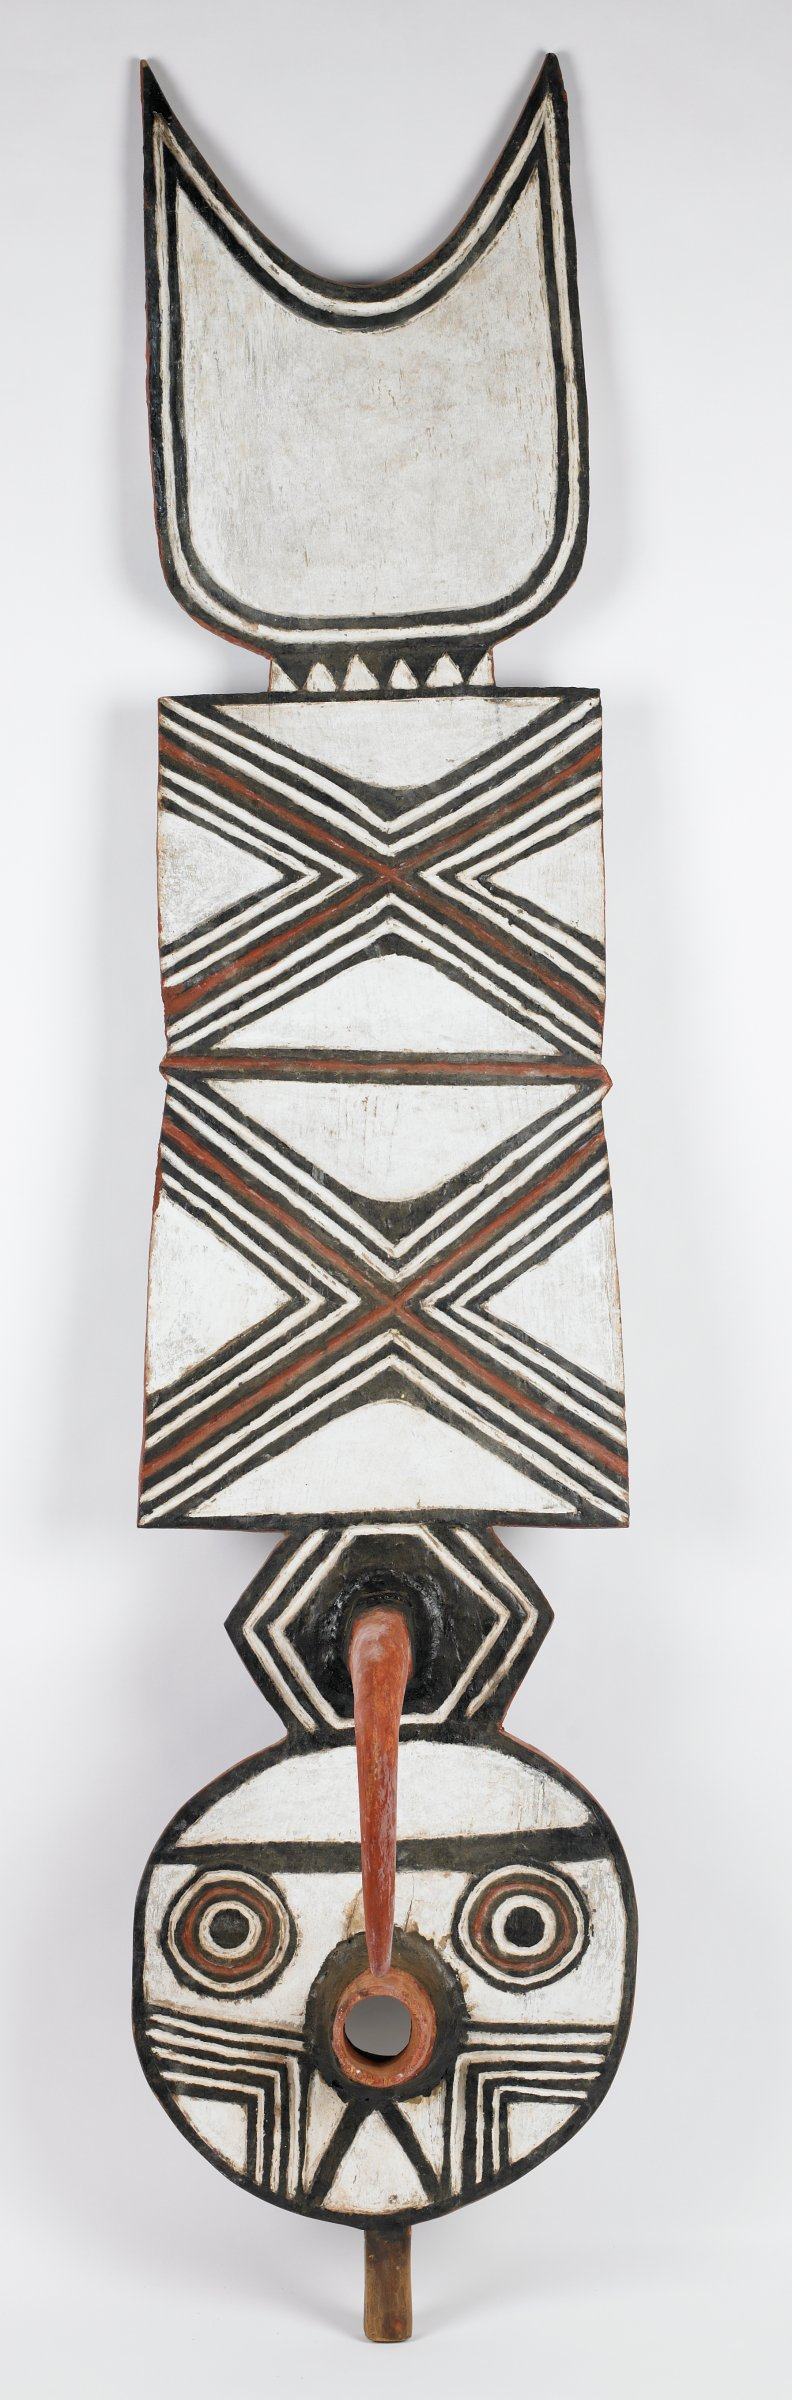 """Tall vertical plank surmounts circular """"face."""" Patterns on plank are carved and painted with red, black, and white pigment. Patterns on front include two large """"X"""" designs, one atop the other. Top of plank is sculpted into upturned crescent moon shape. Back of plank has checkerboard pattern. Hood """"beak"""" shape extends from front of circular face, pointing downward toward circular """"mouth"""" opening. Deep oval shape extends from back side of face to cover masquerader's face. Holes around edge of oval for rope to secure mask to back of masquerader's head."""